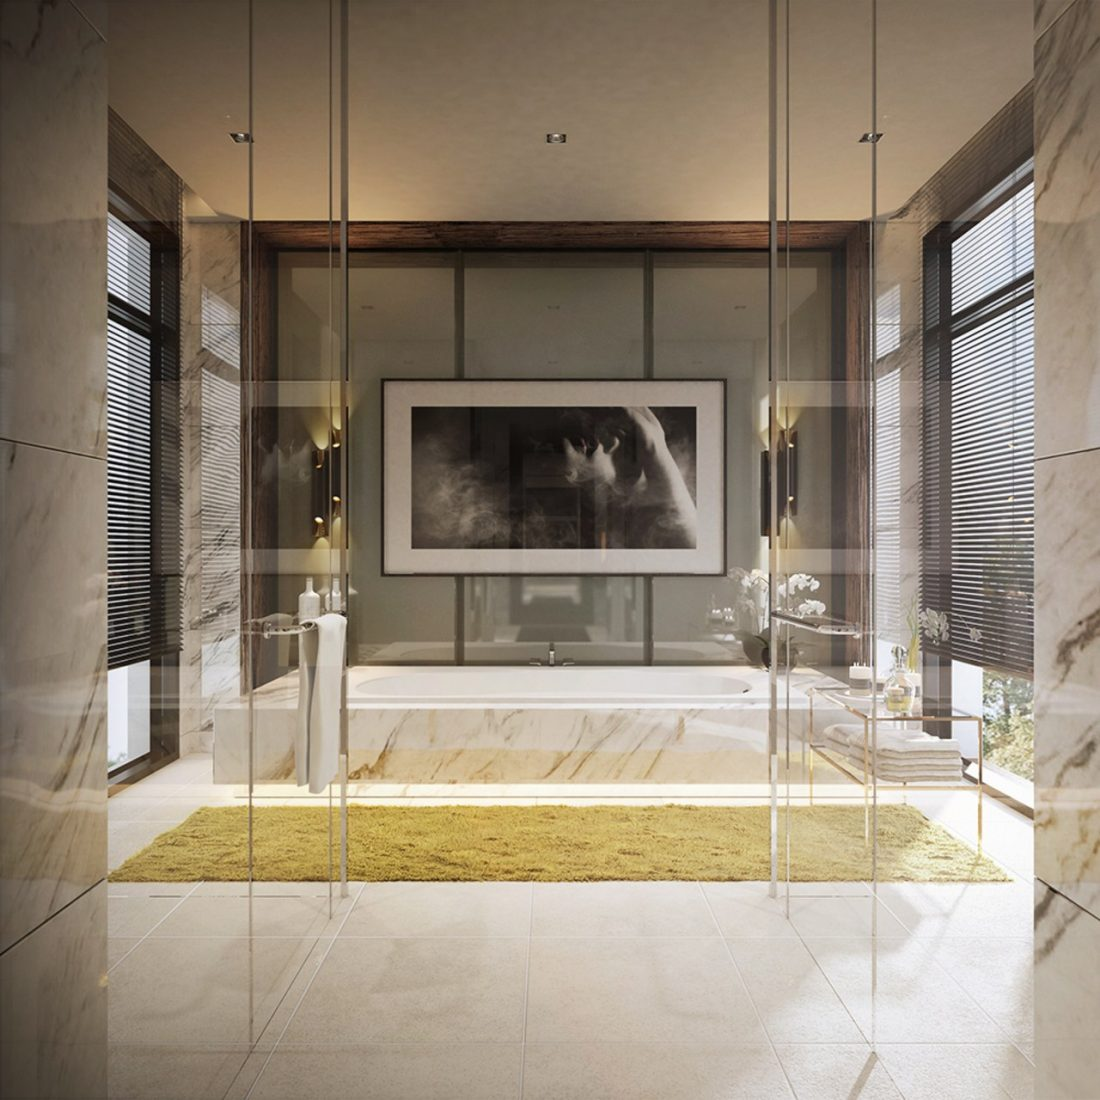 Interior Design Lavanya Residences Langkawi Malaysia Master Bathroom Design v1